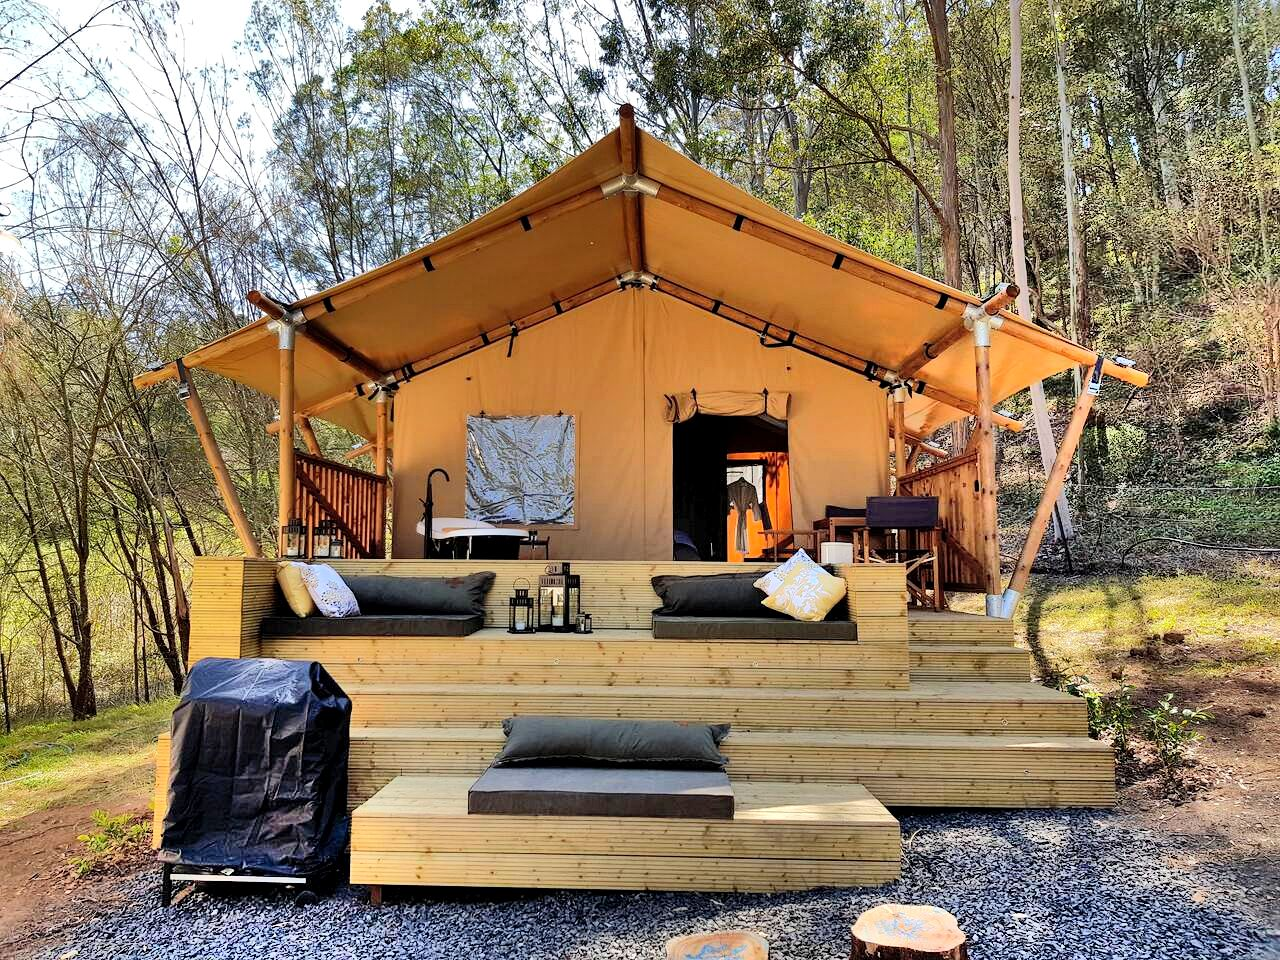 This fantastic Grose Vale accommodation is the perfect romantic getaway near Sydney. Holiday rentals don't come more tranquil!